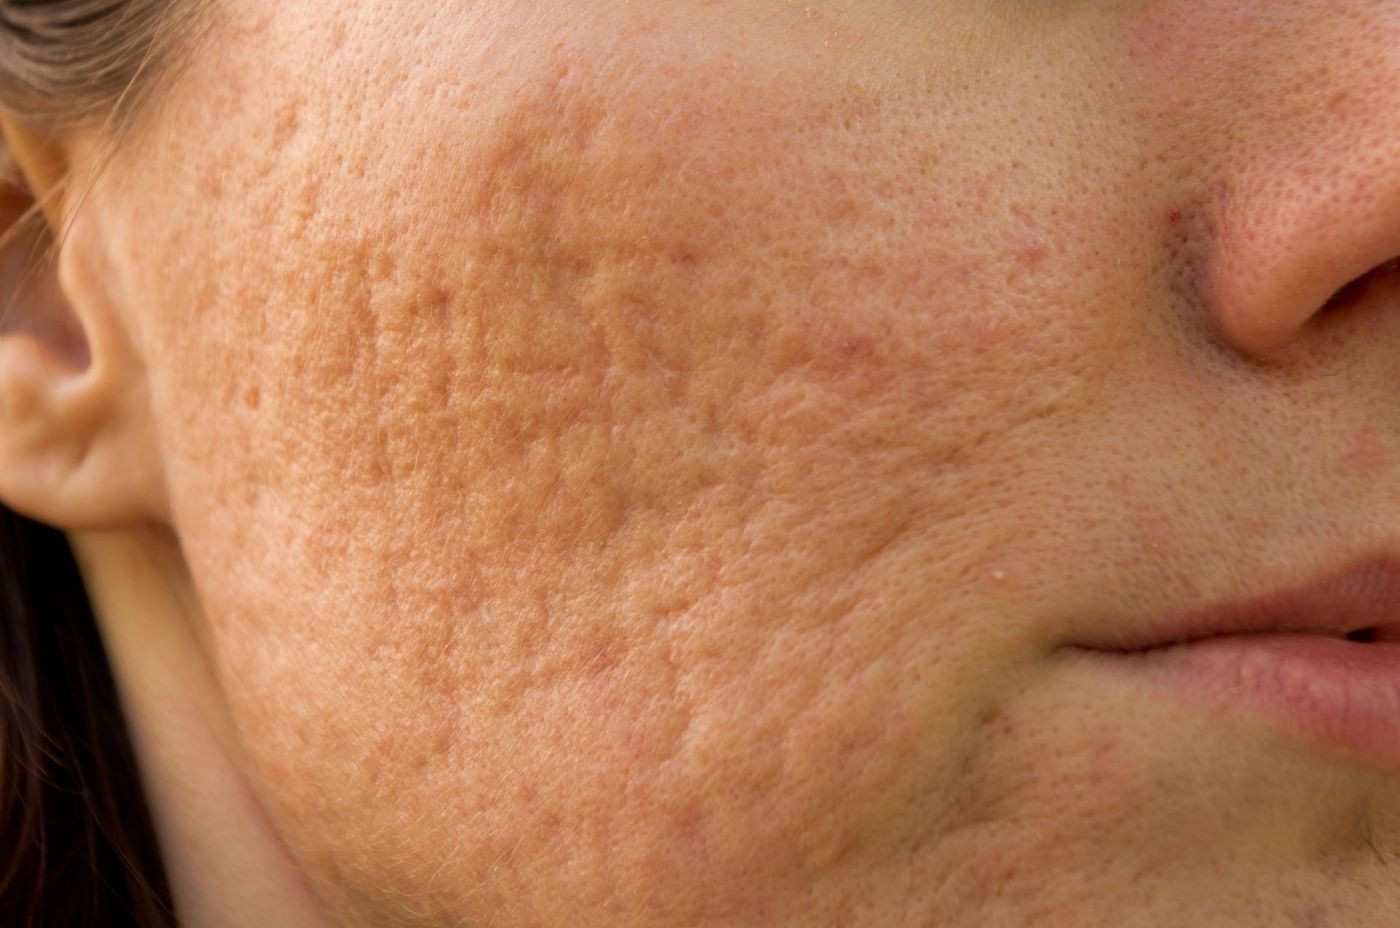 How to Treat (and Avoid) Acne Scars